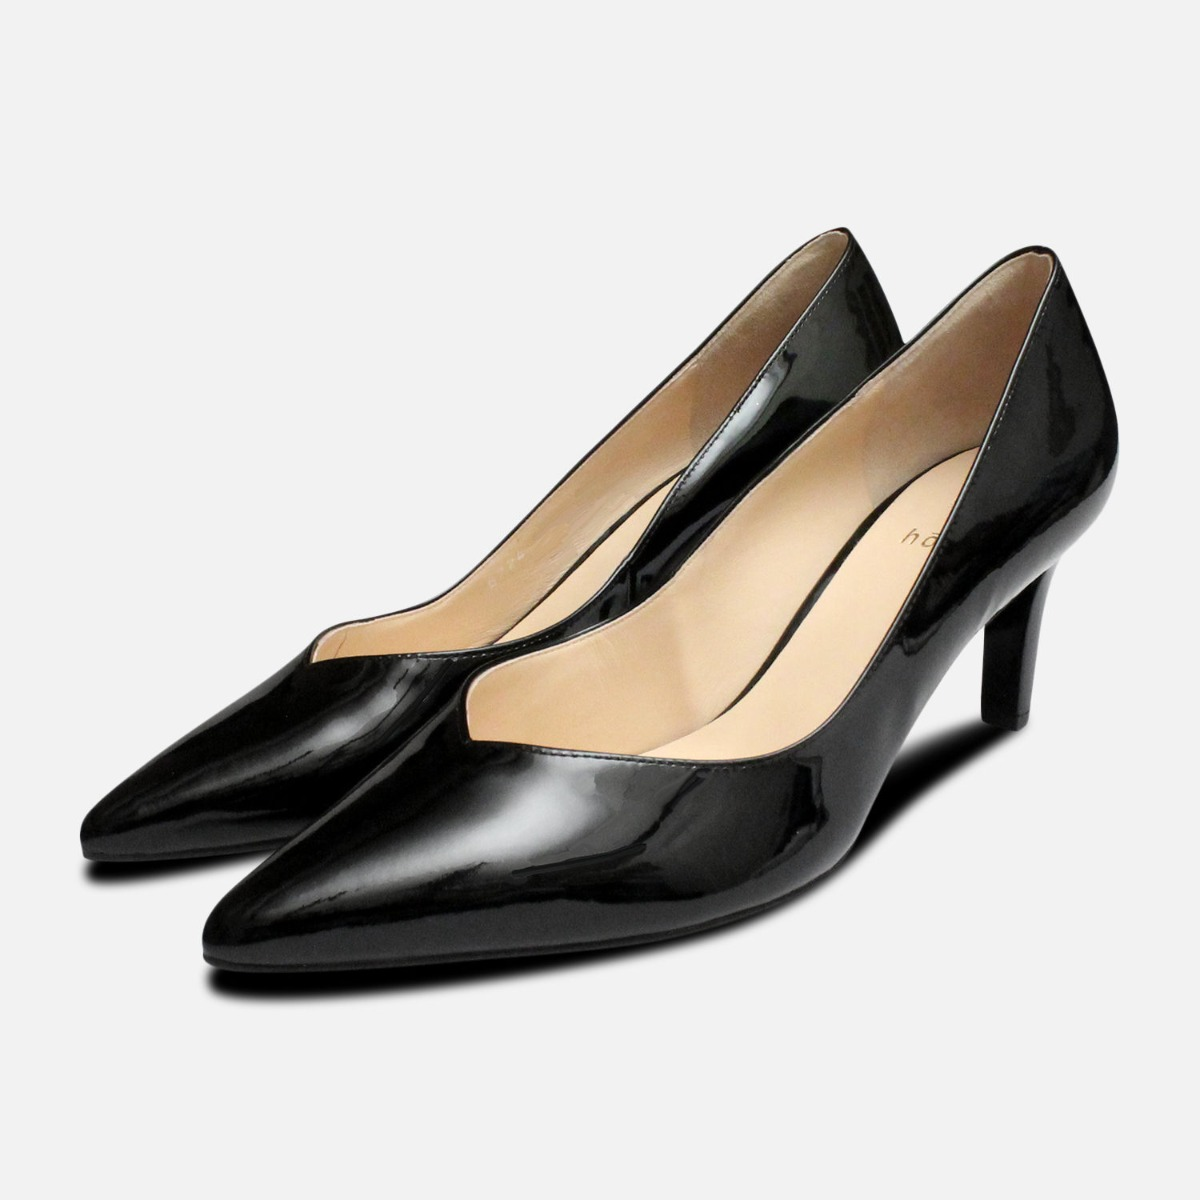 ad26b59c6c9 Details about Hogl Black Patent Pointed Toe Medium Heel Shoes